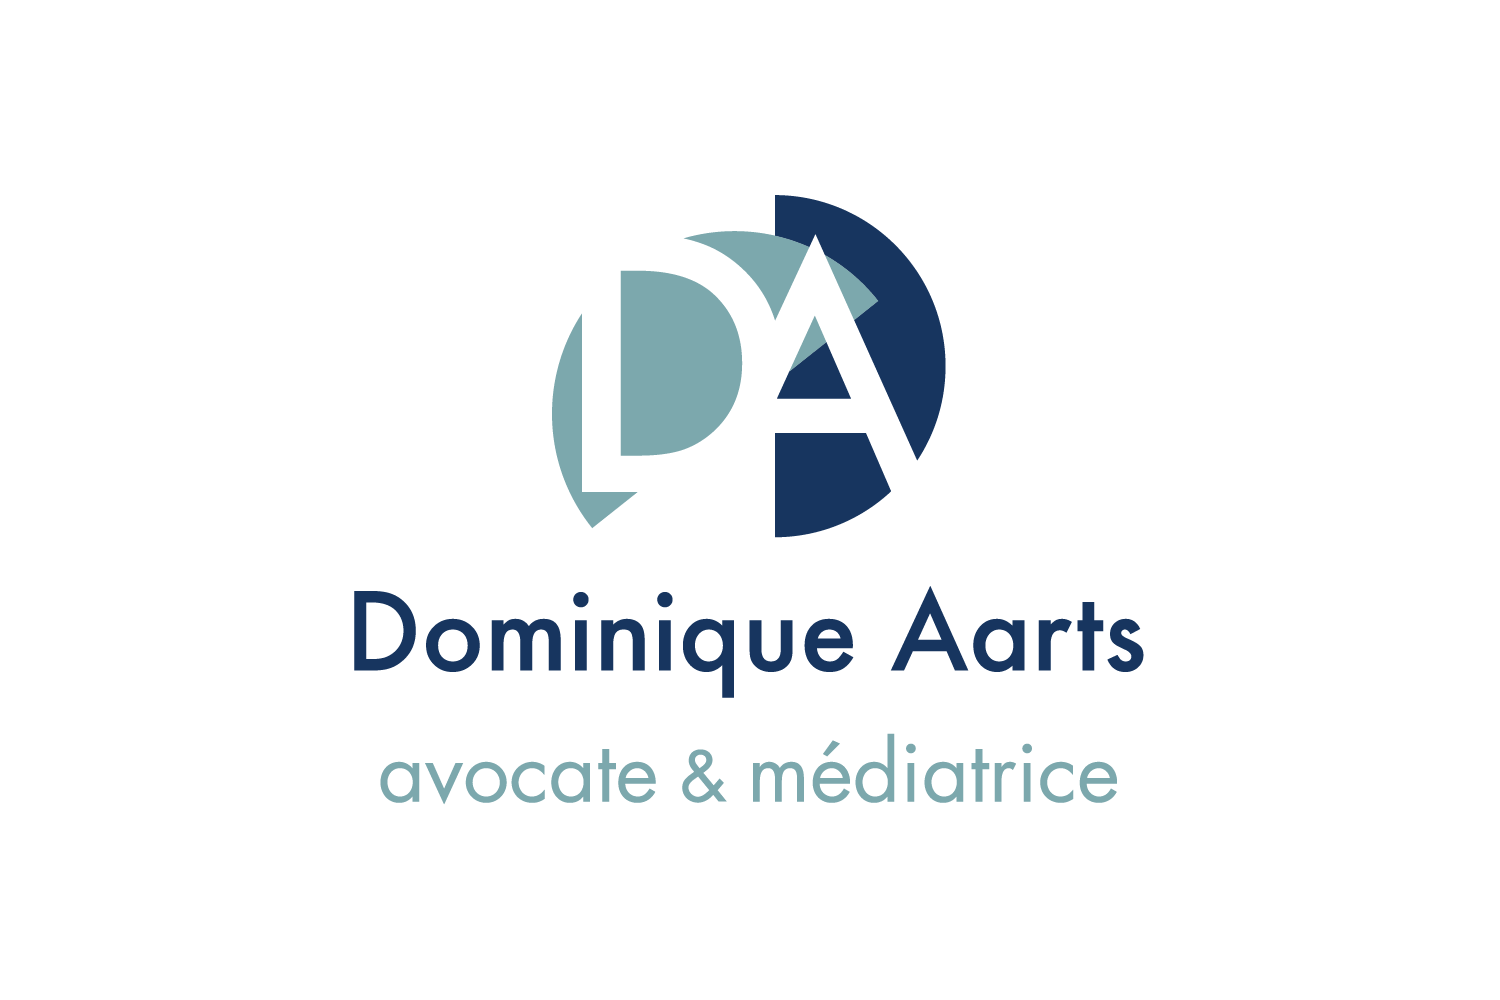 crabgraphic-DominiqueAarts-logo